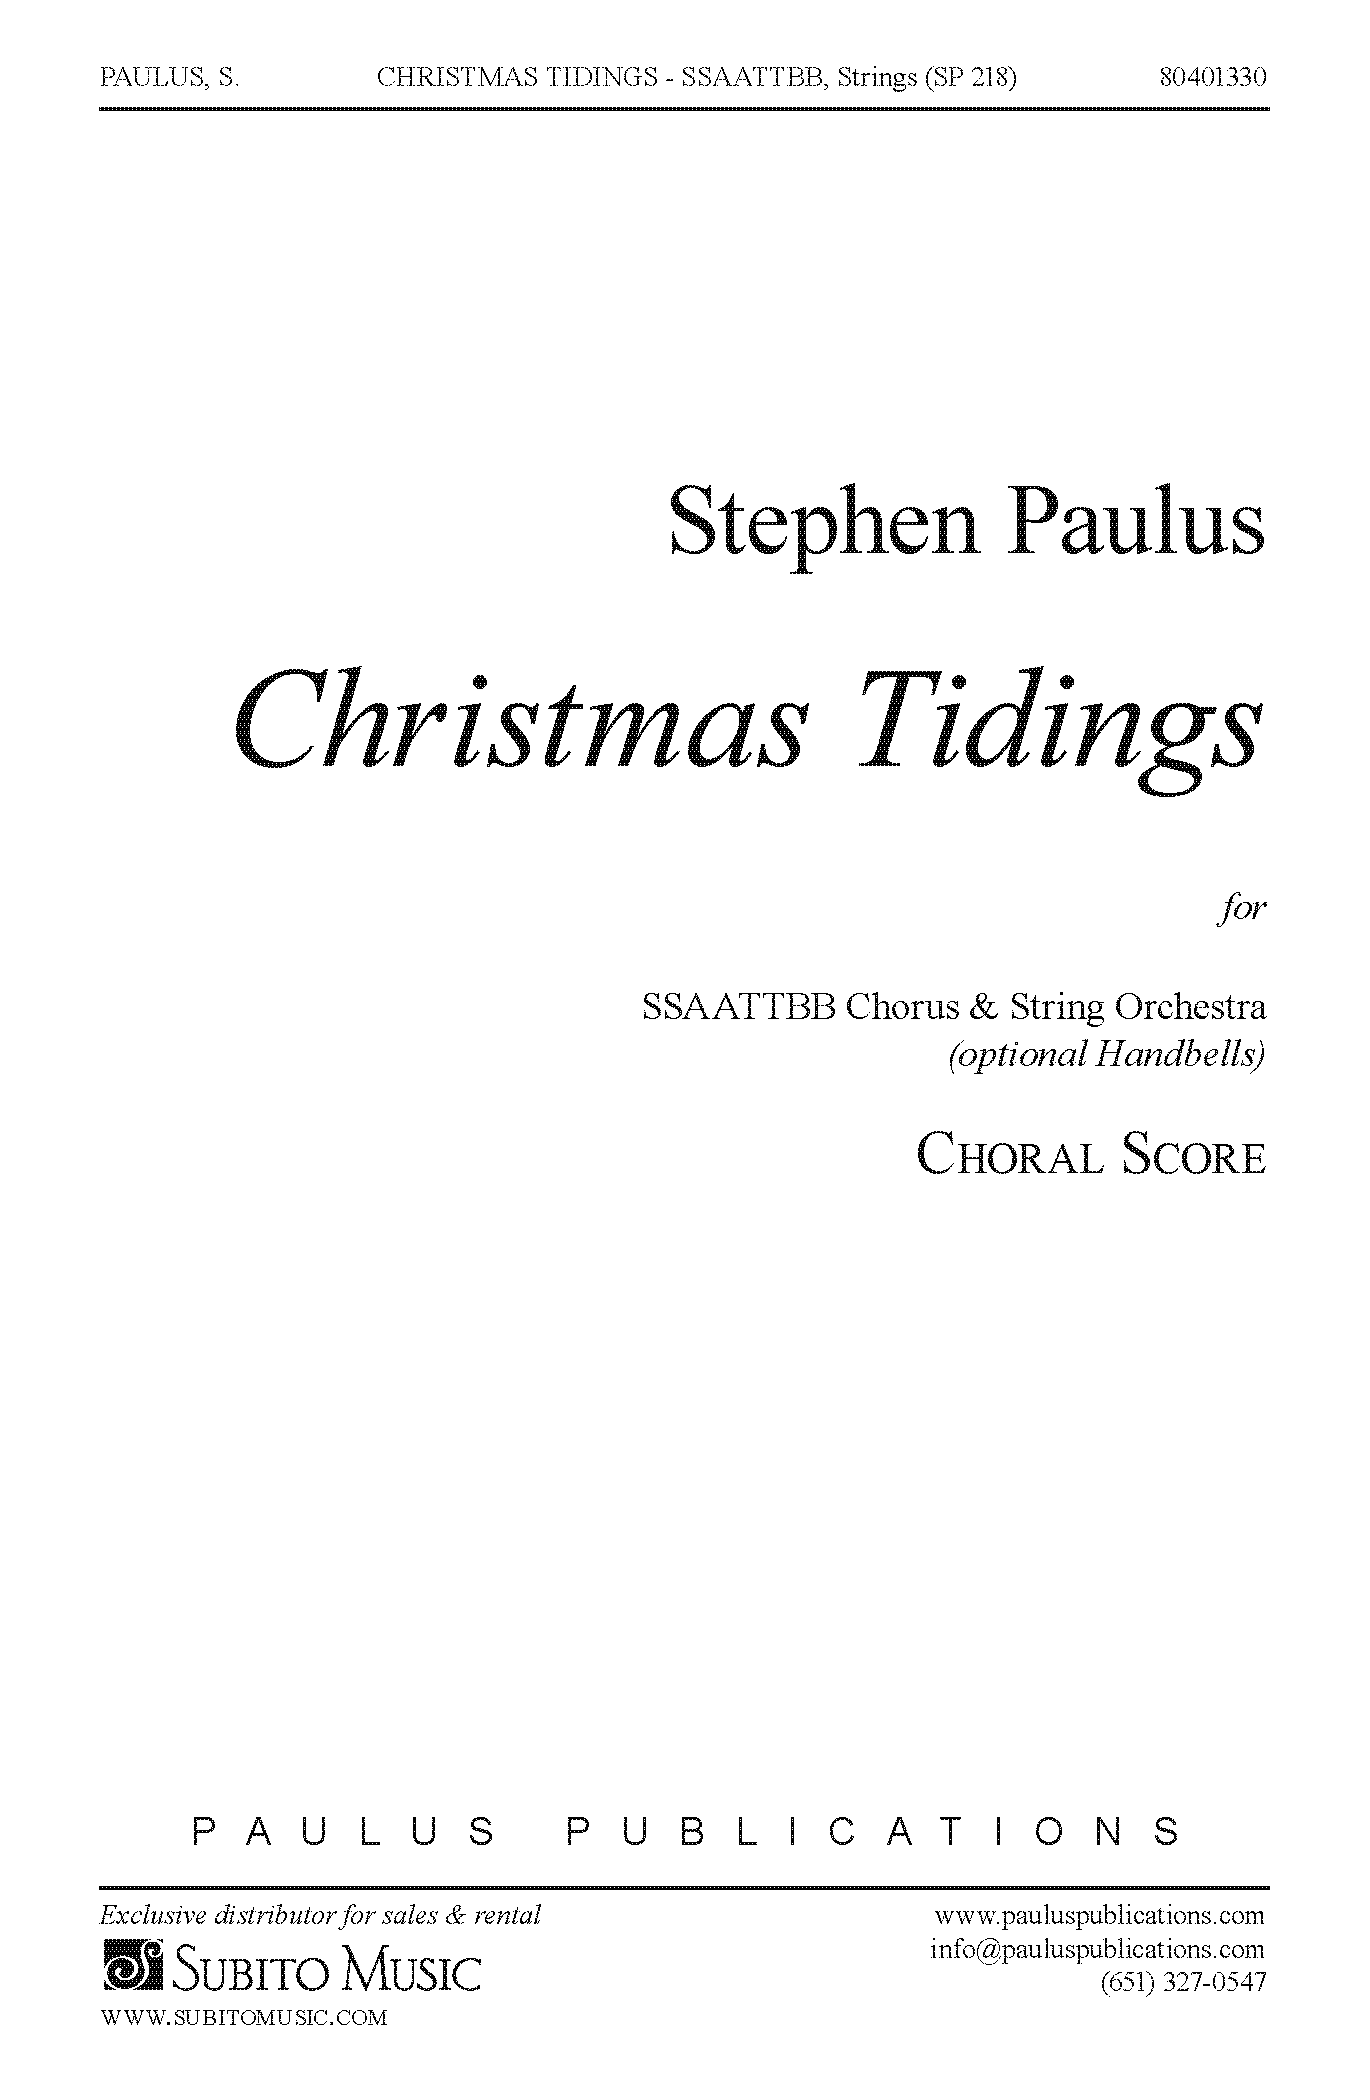 Christmas Tidings (parts) for SSAATTBB Chorus & String Orchestra (opt. Handbells)